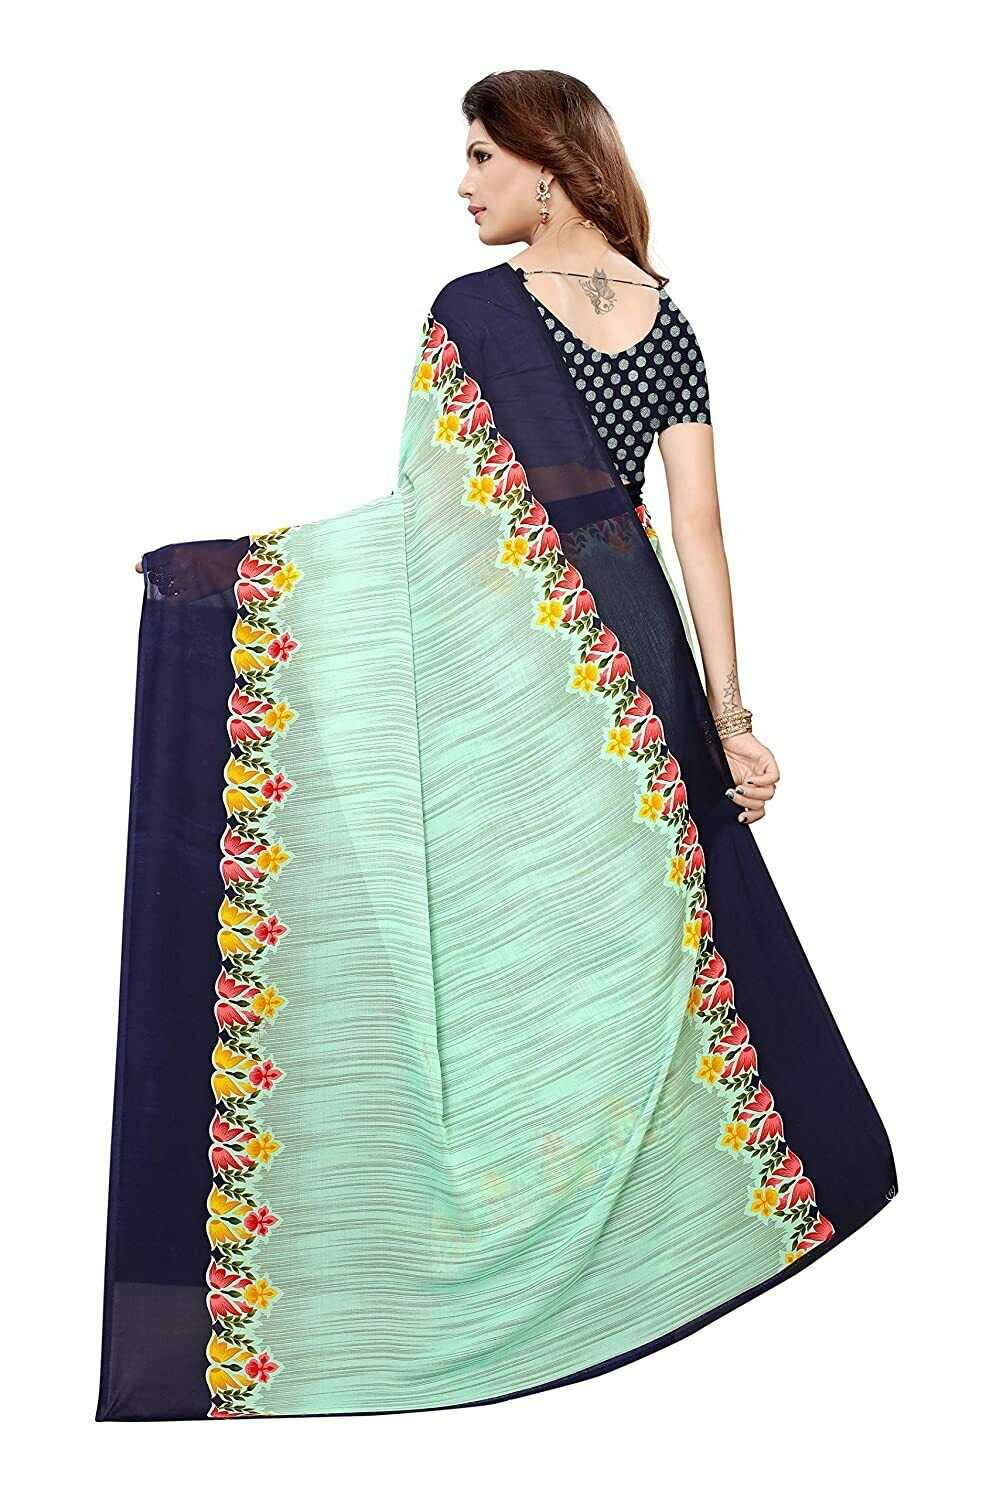 Women's Sea Green Color Georgette Floral Printed Saree with Blouse Piece